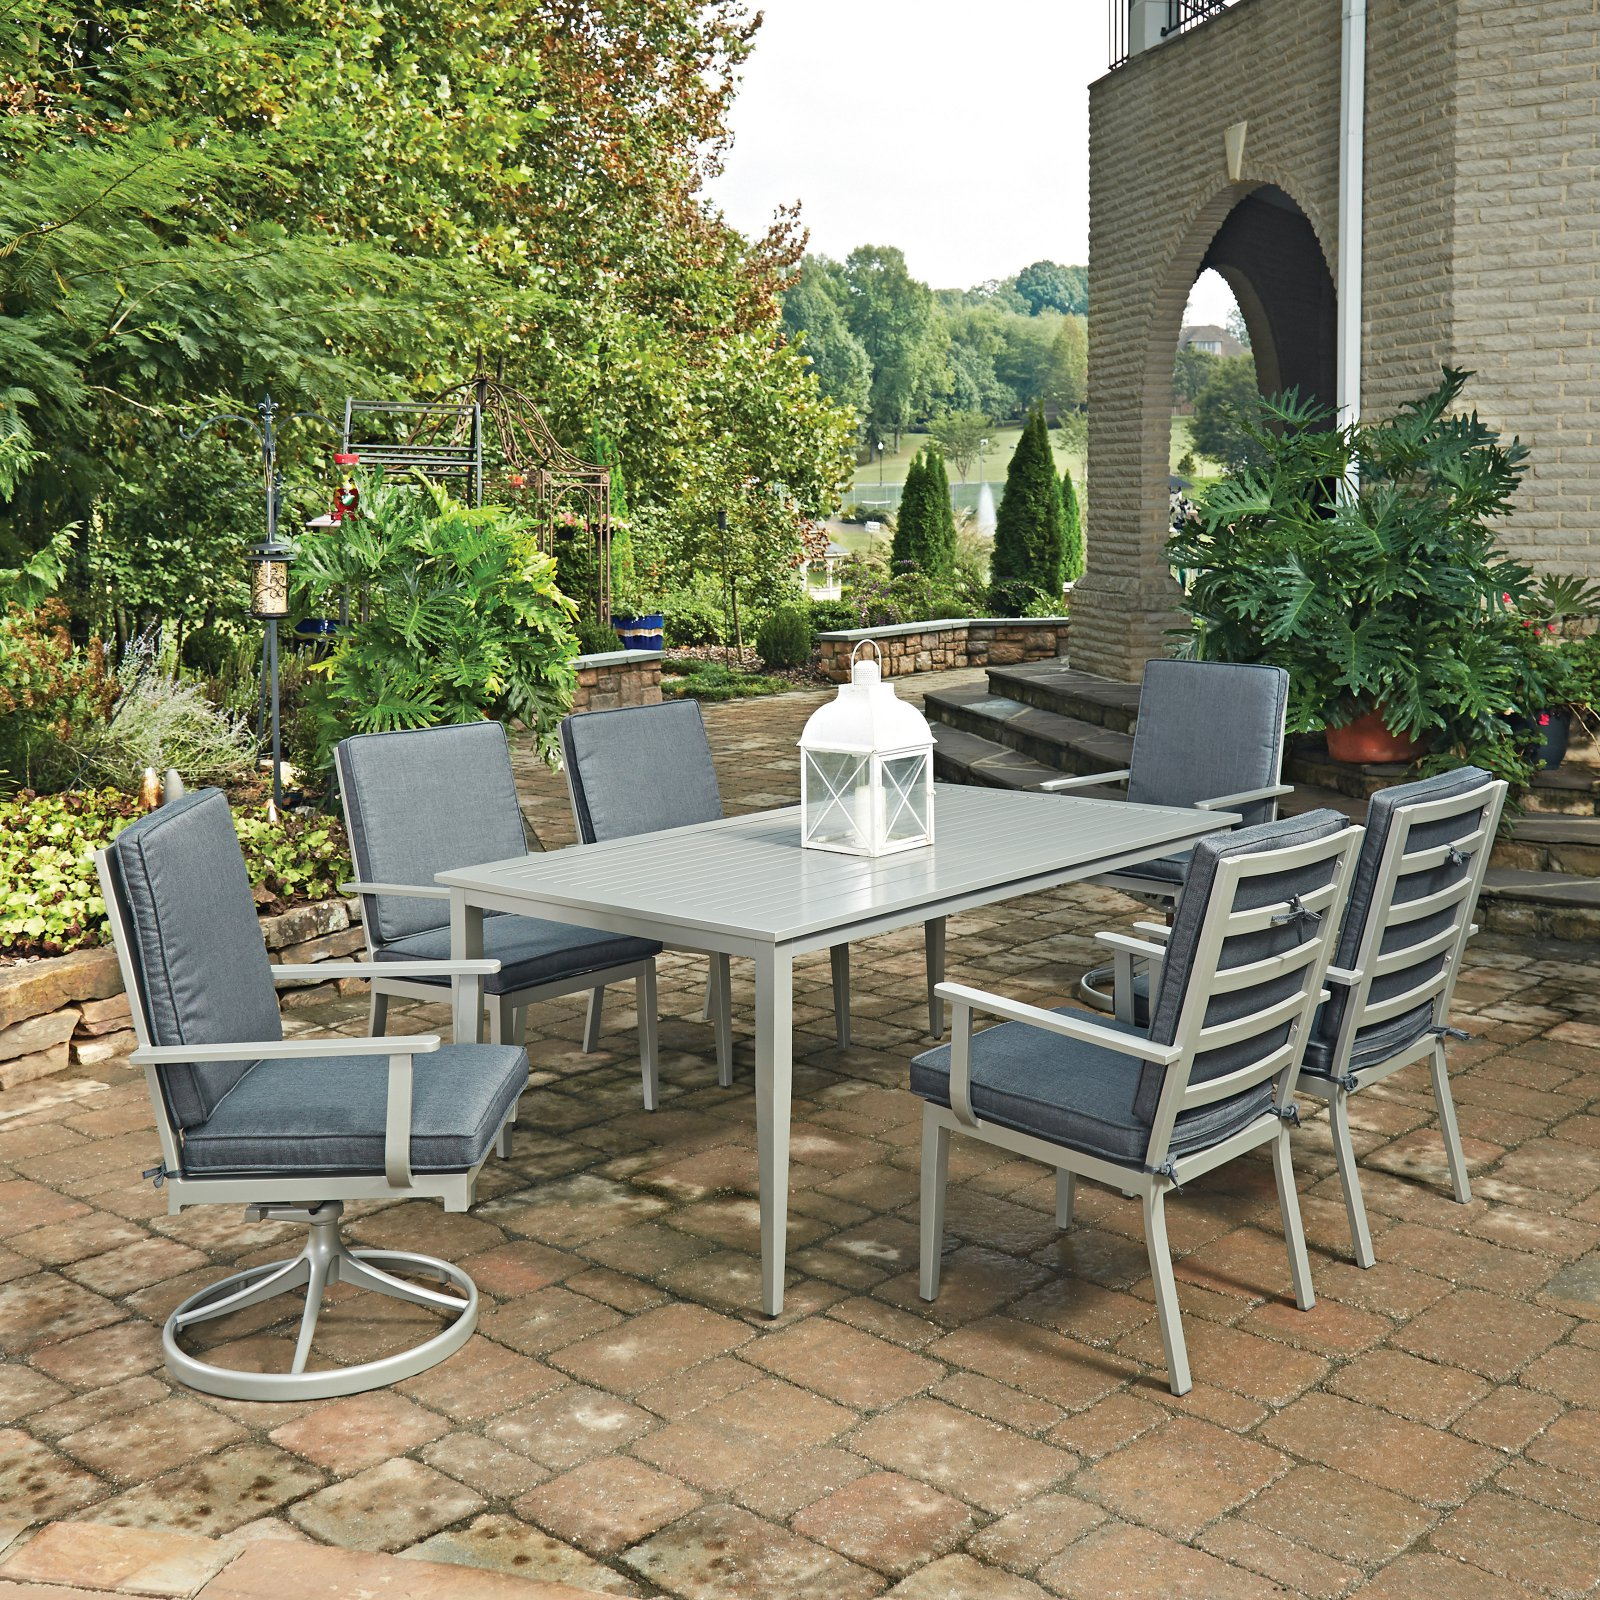 South Beach 7 Pc. Rectangular Outdoor Dining Table with 4 Arm Chairs & 2 Swivel Rocking Chairs